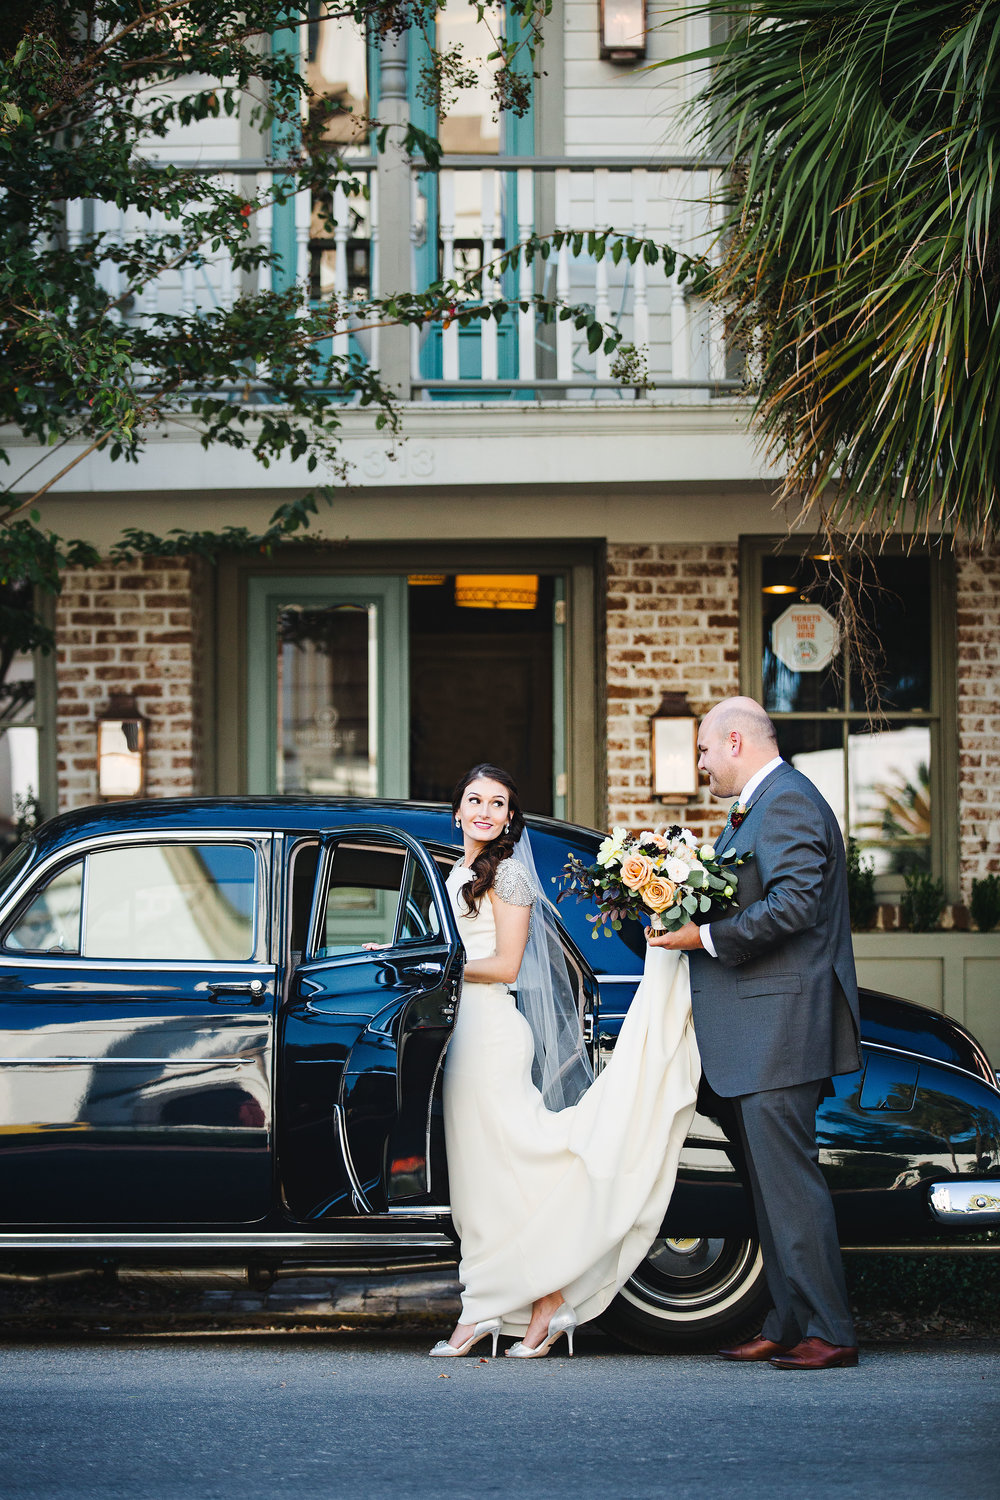 izzy-hudgins-photography-savannah-wedding-ivory-and-beau-bridal-boutique-savannah-wedding-planner-colonial-house-of-flowers-forsyth-park-wedding-old-fort-jackson-wedding-squidwed-films-savannah-boutique-savannah-weddings-25.jpg